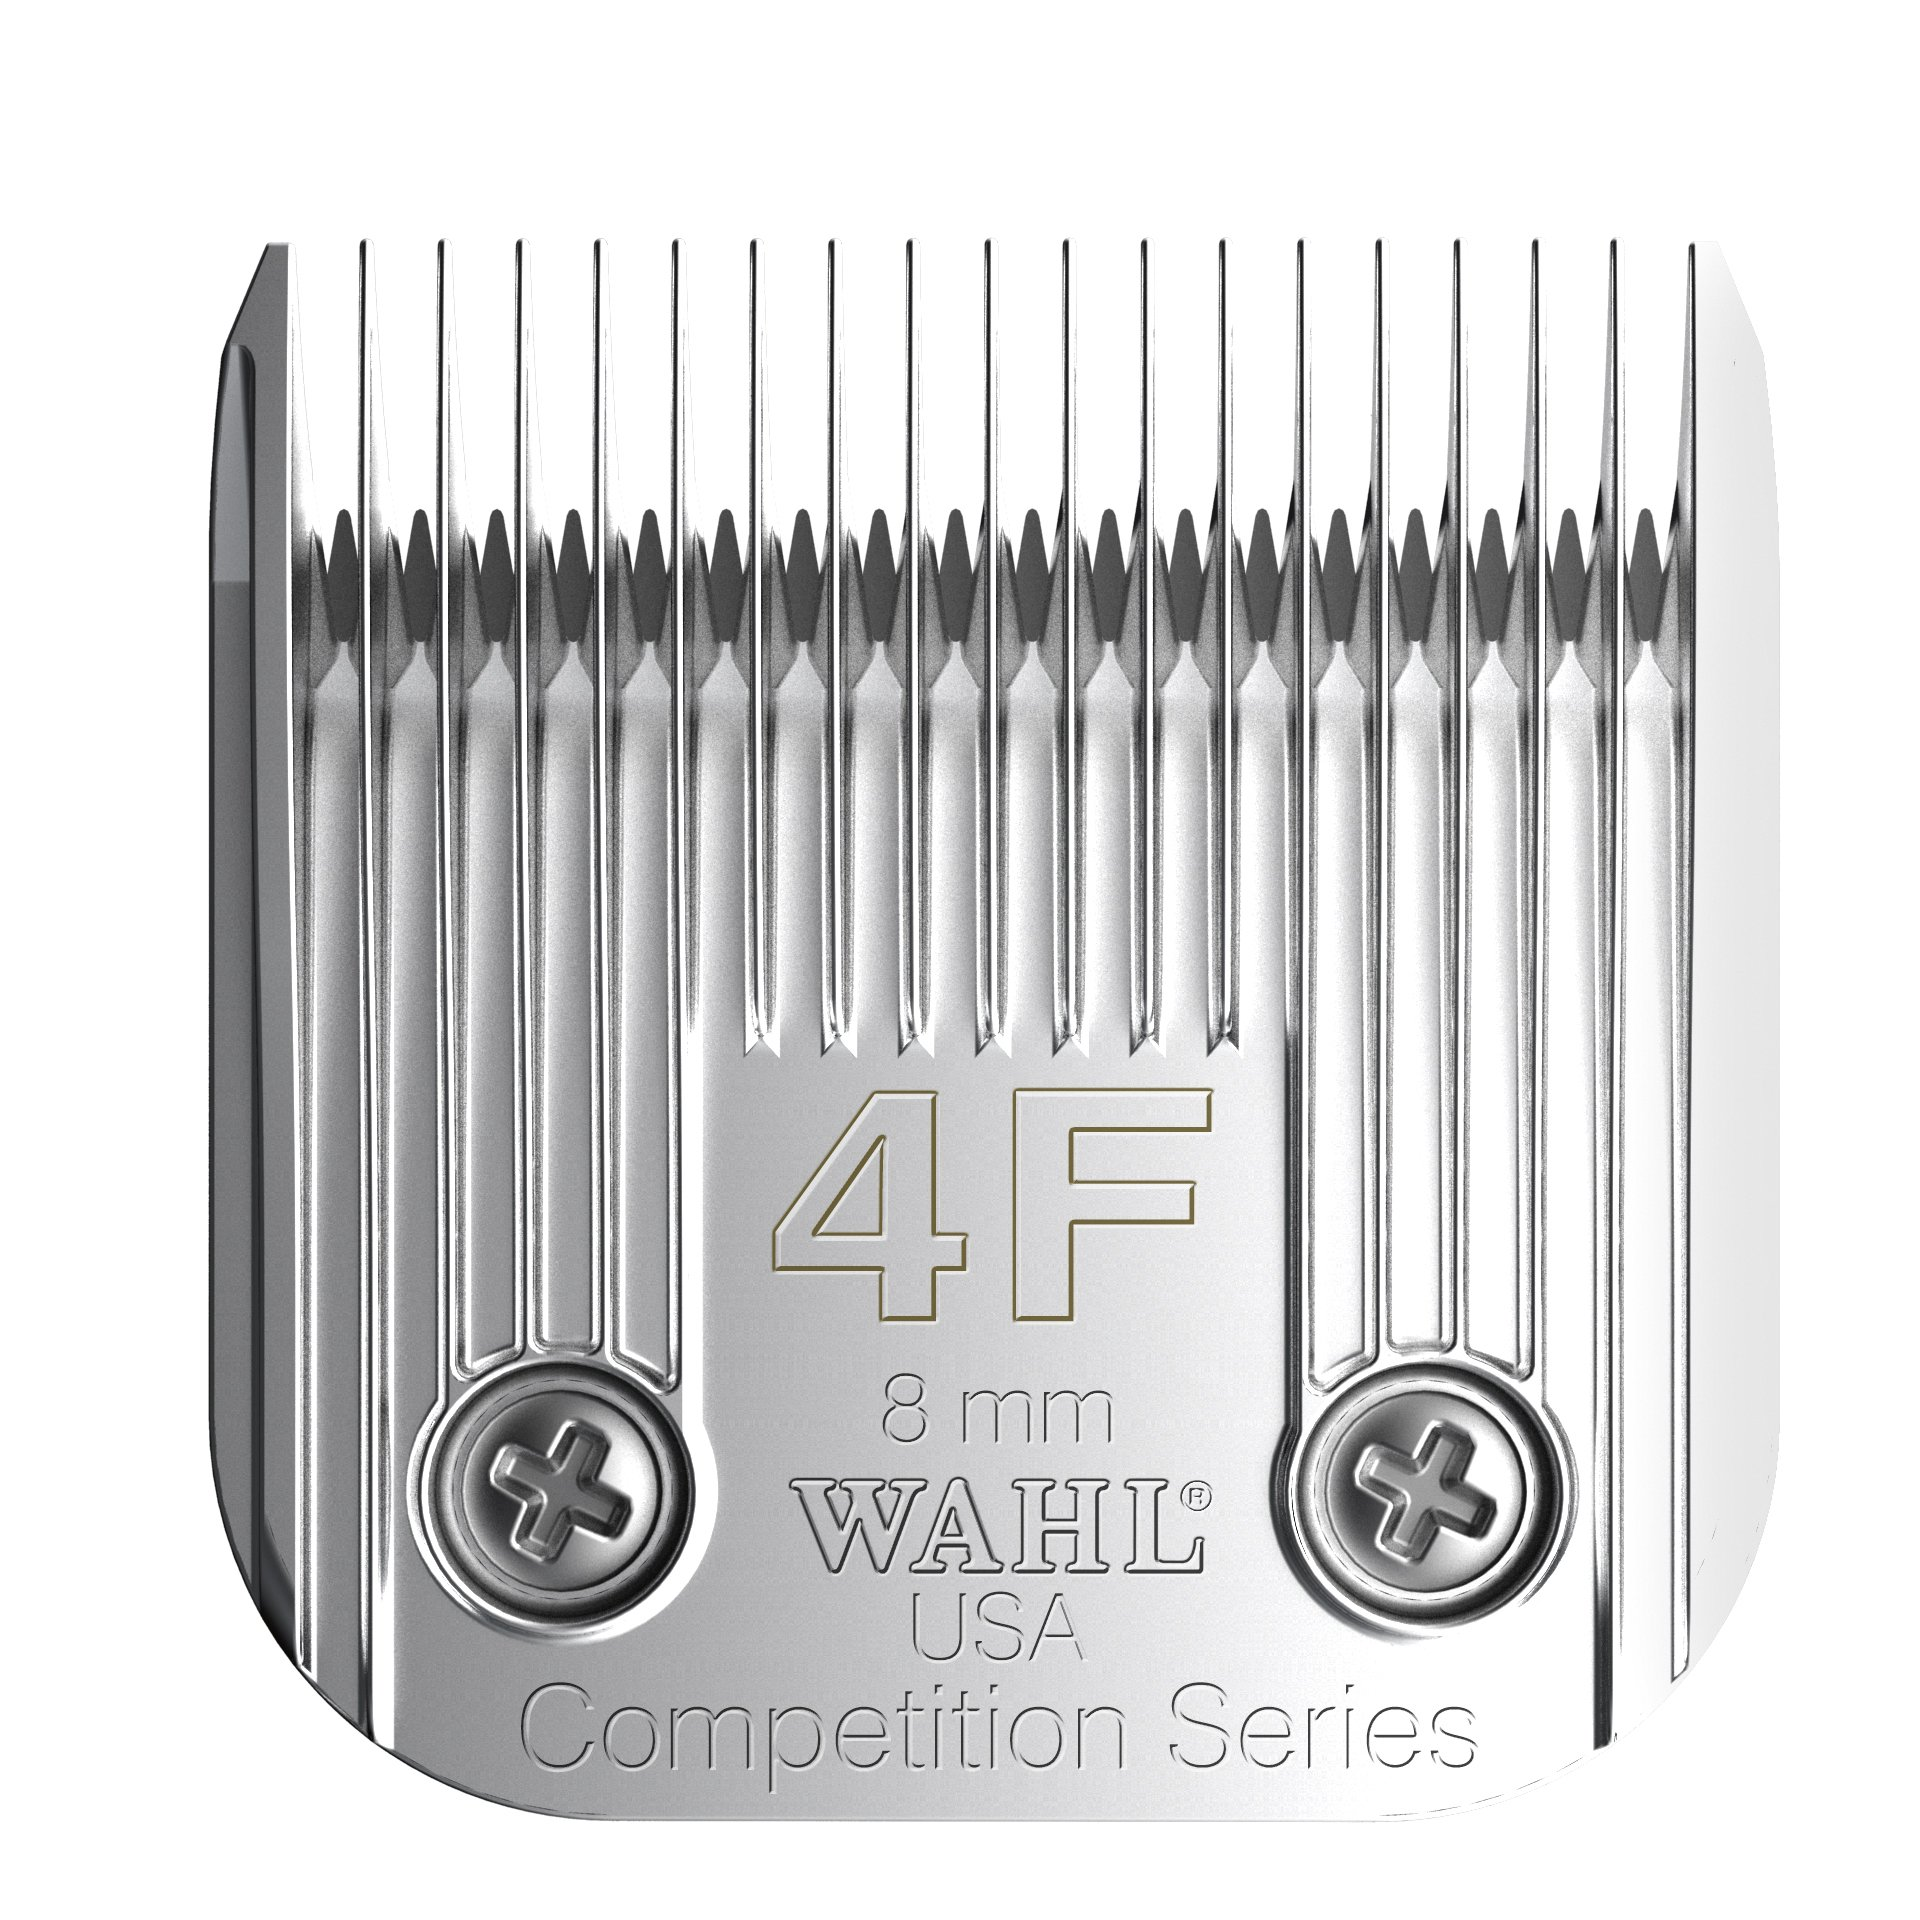 Wahl Professional Animal #4F Extra Full Coarse Competition Series Detachable Blade with 5/16-Inch Cut Length (#2375-100) by Wahl Professional Animal